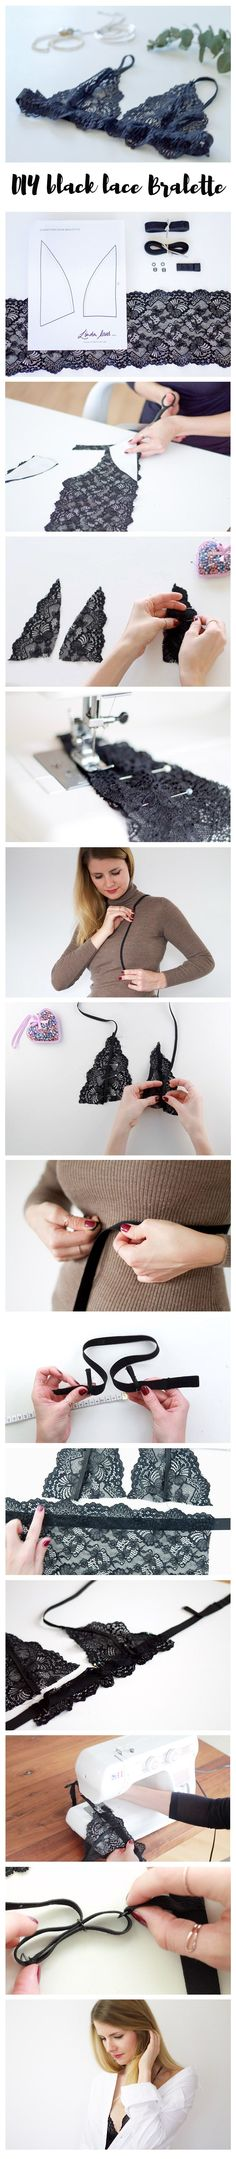 Black lace Bralette DIY - A fun and easy do it yourself project for the summer ... you can